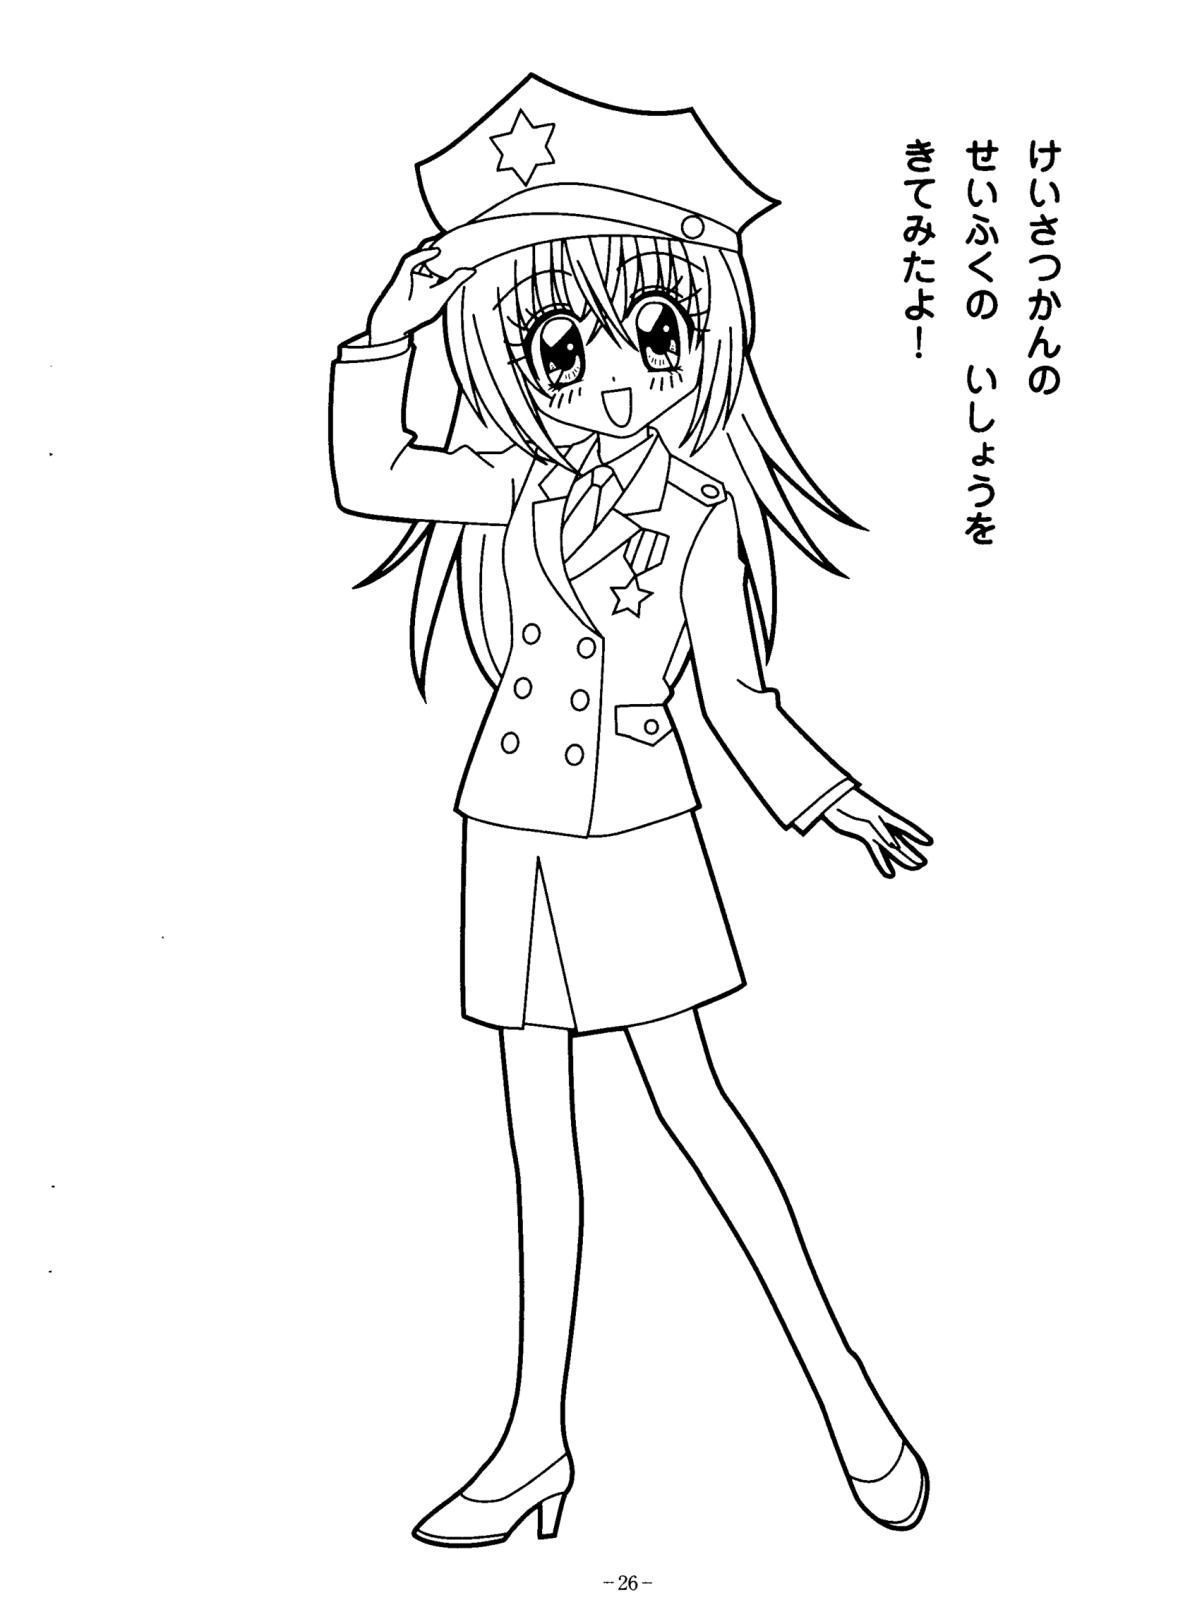 42 Coloriage Imprimer Kilari Coloring Pages For Girls Anime School Girl Cartoon Coloring Pages